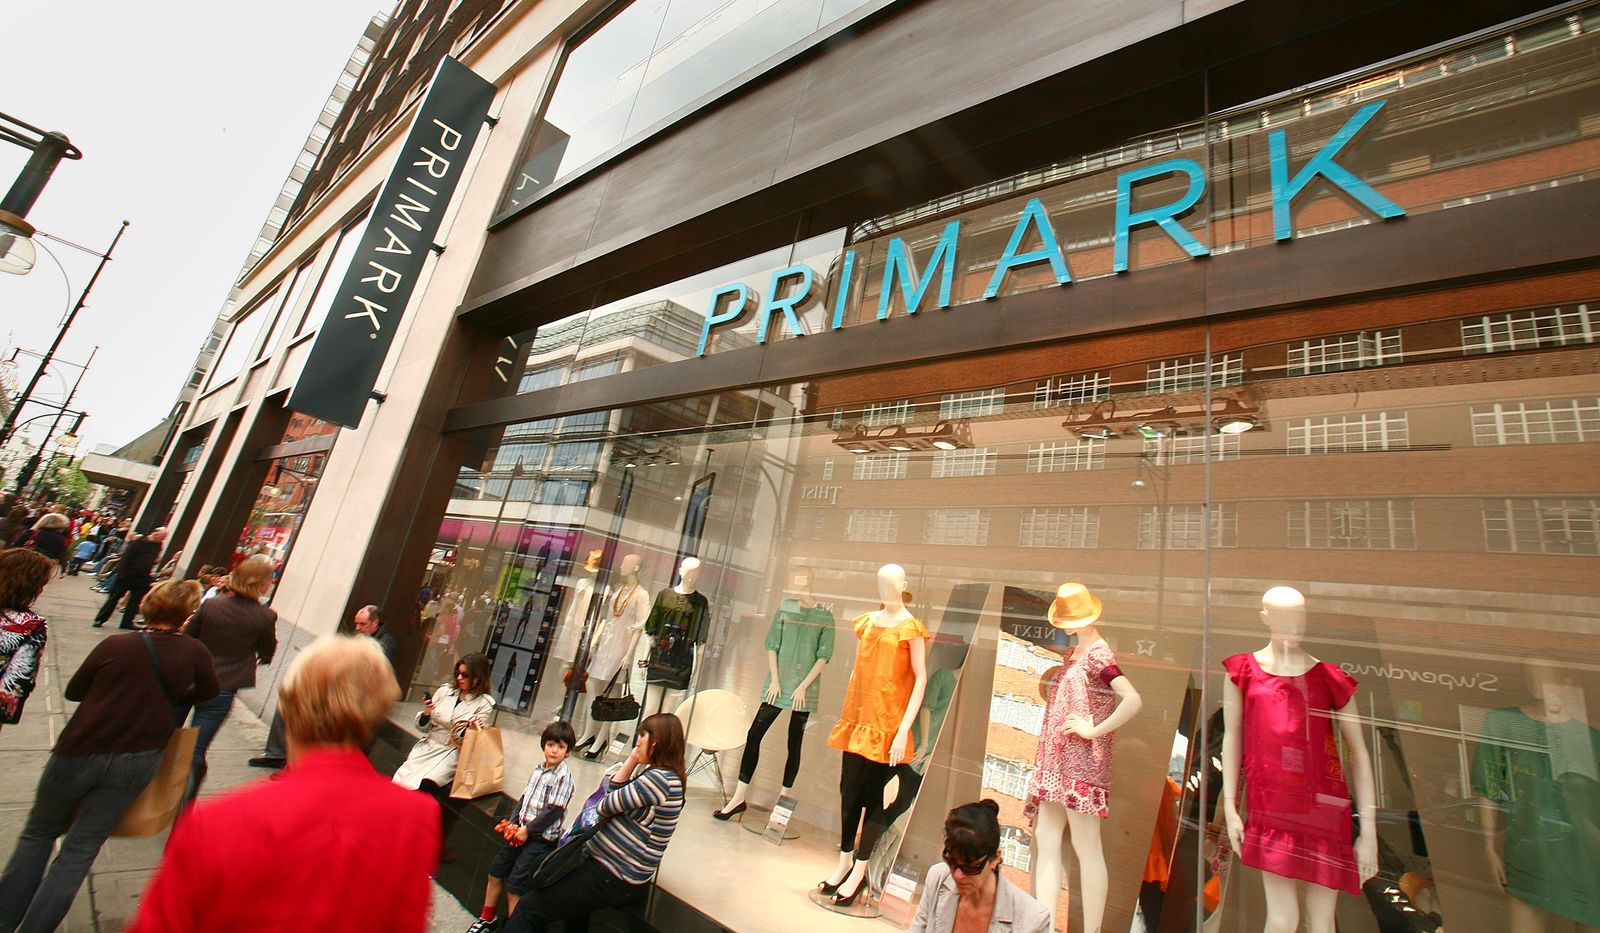 Primark in London / Mode / Modeketten